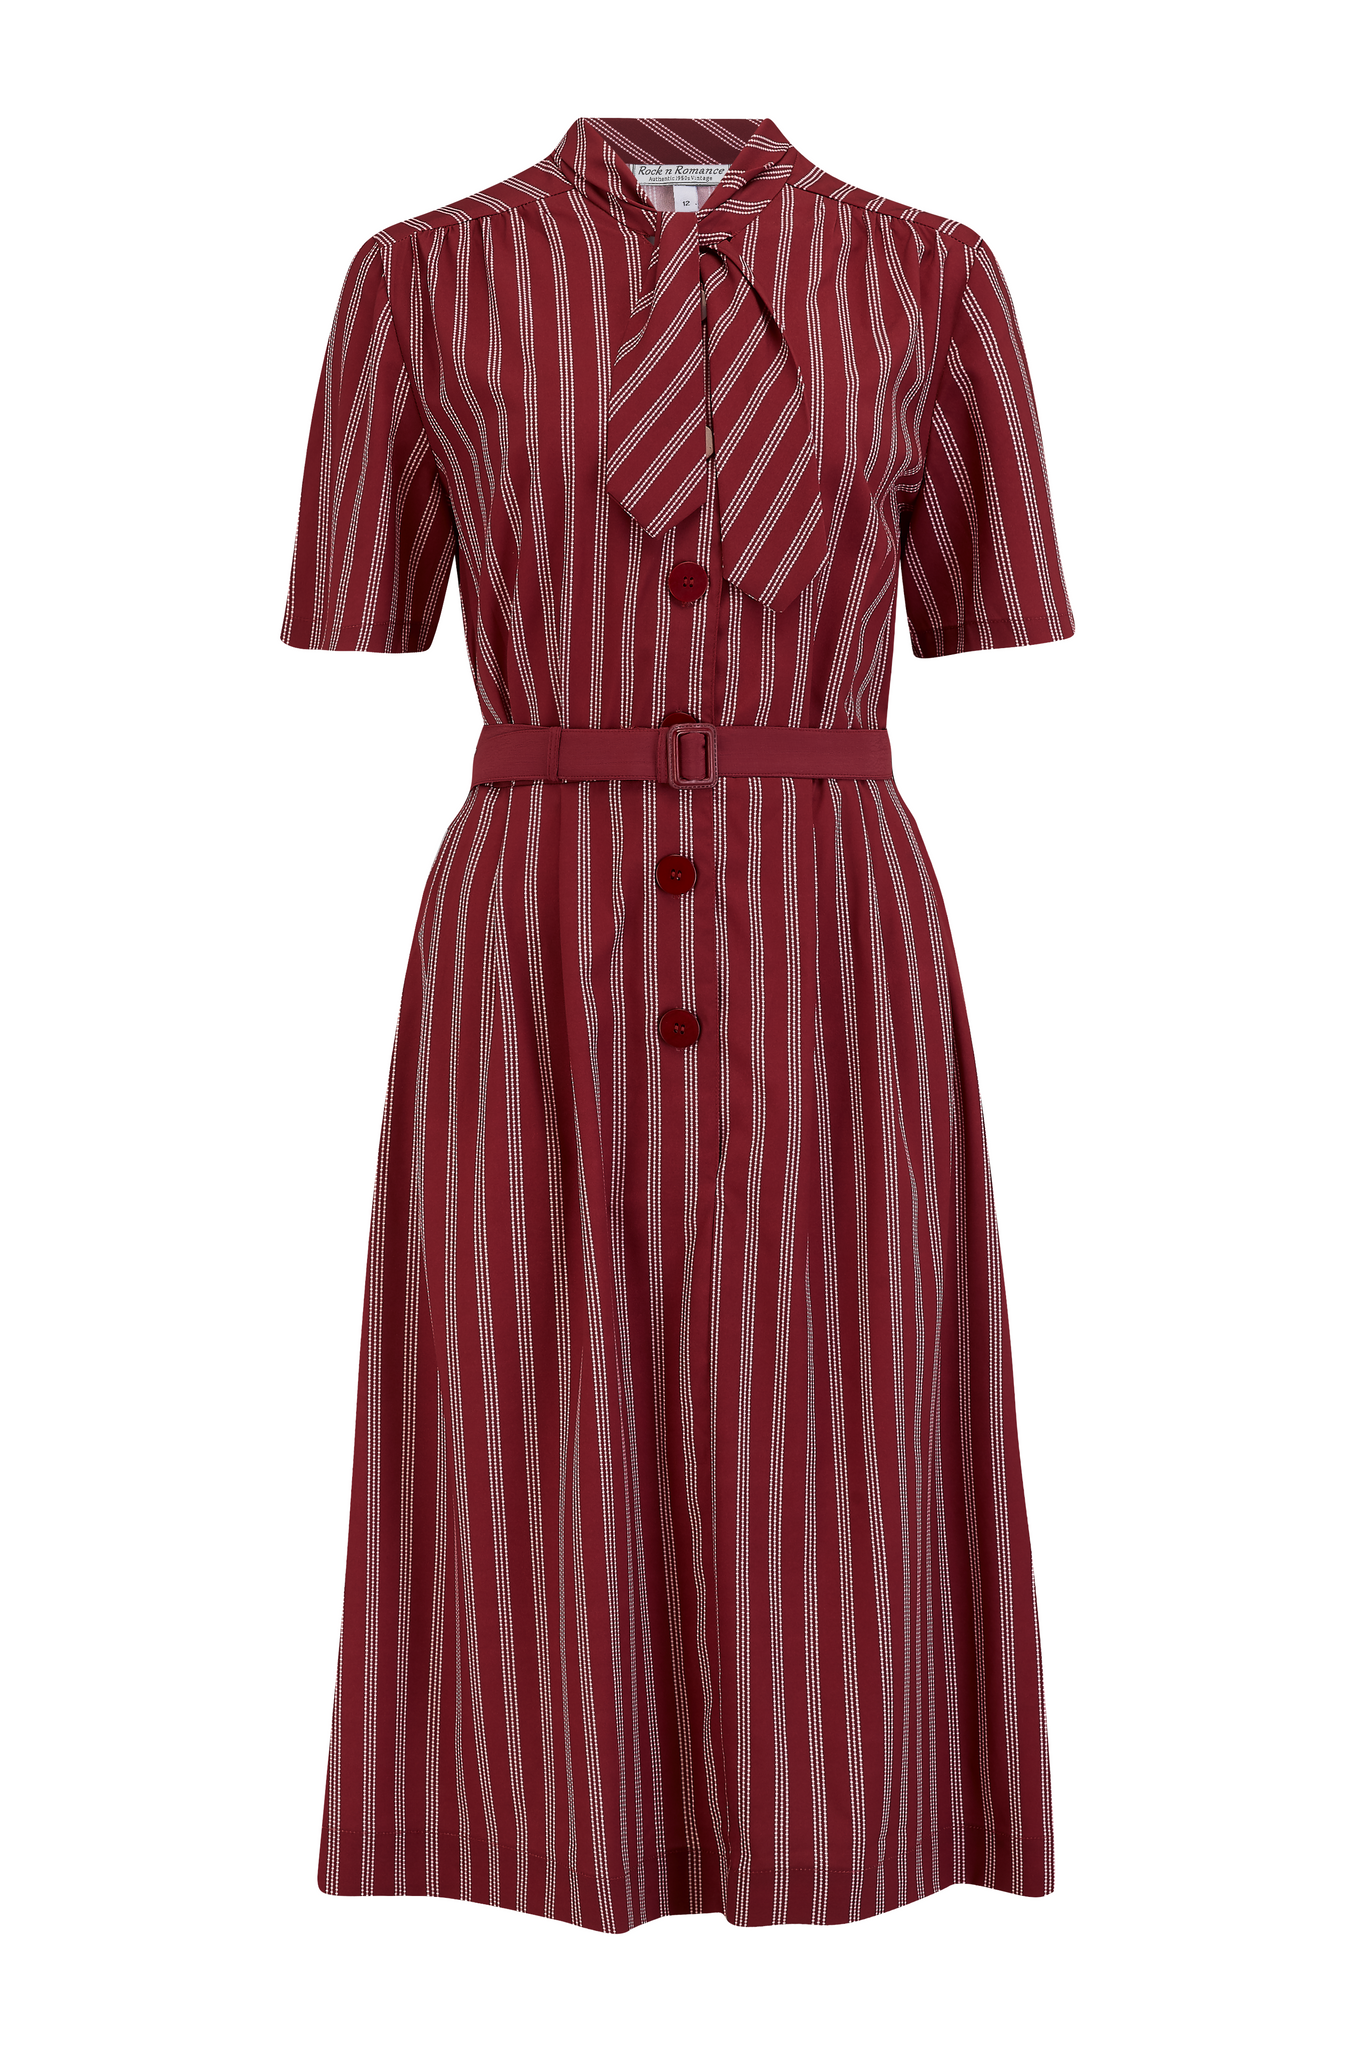 "Rock n Romance **Sample Sale** ""Casidy"" Pussy Bow Dress in Maroon Dotty Stripe Print, Perfect 1950s Style - RocknRomance Clothing"